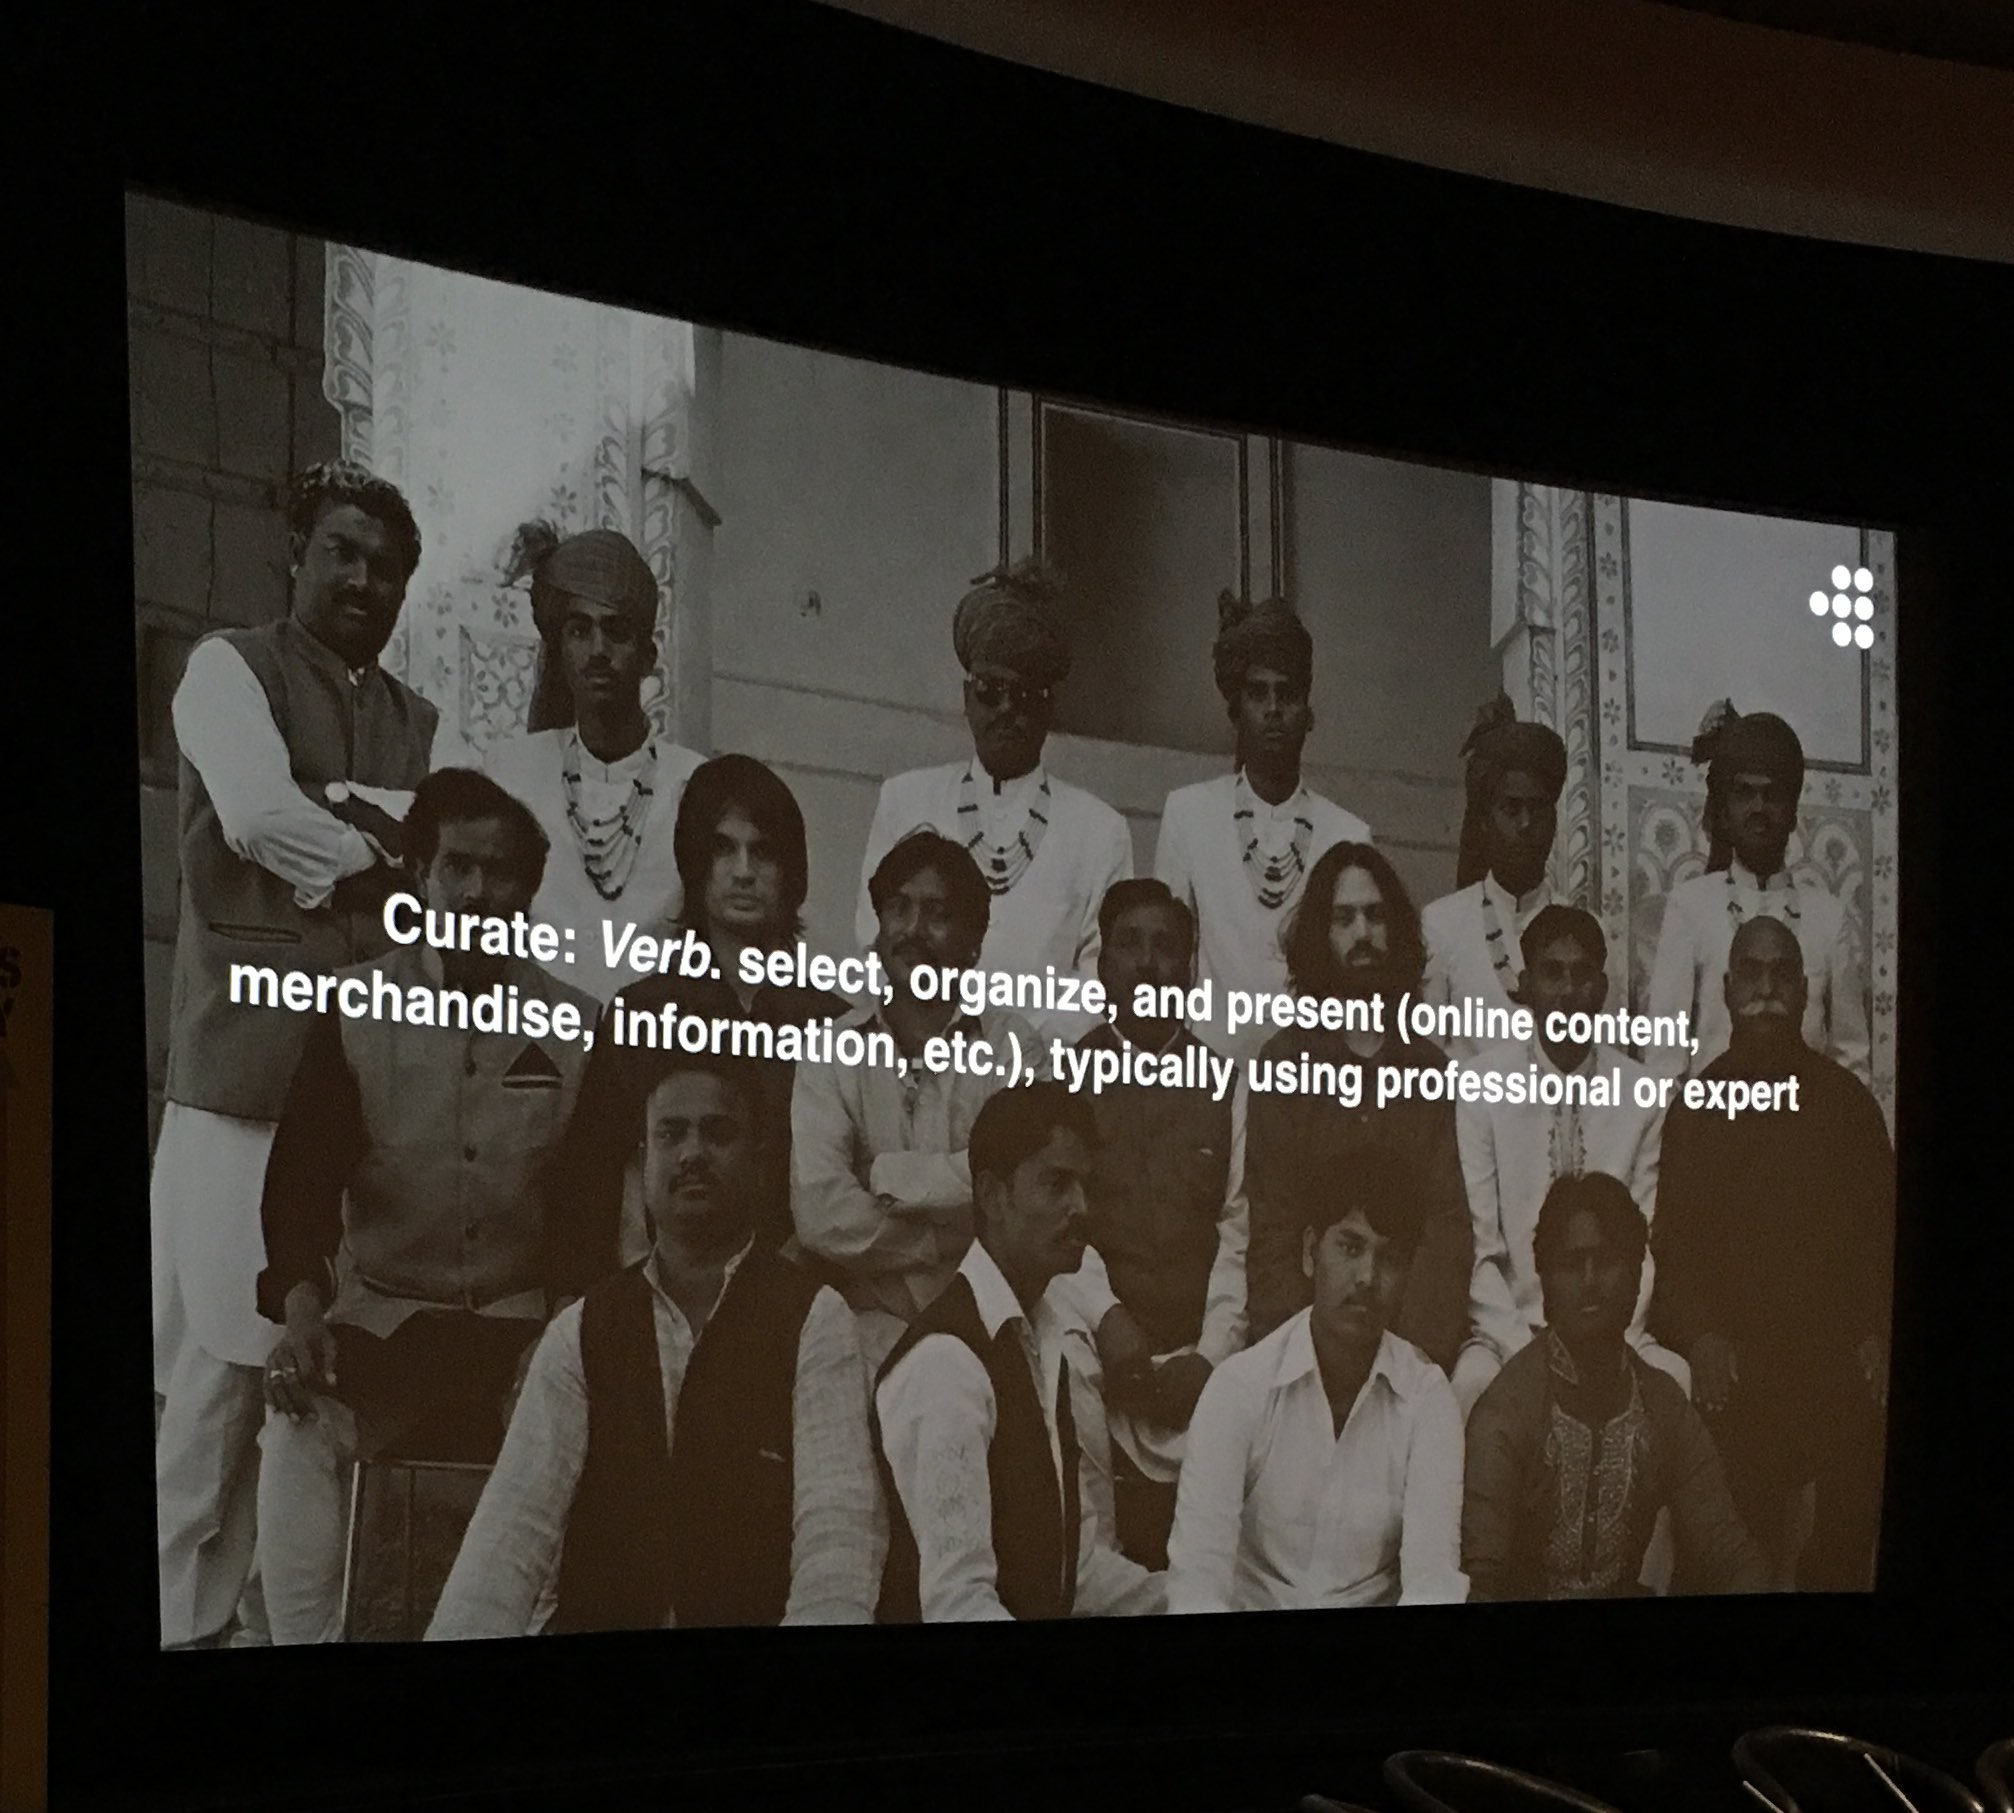 'People like to feel there is someone behind the programme' @mubi Maybe we should do more of this @cfylm ? #ThisWayUp16 https://t.co/t8gR5yoShd